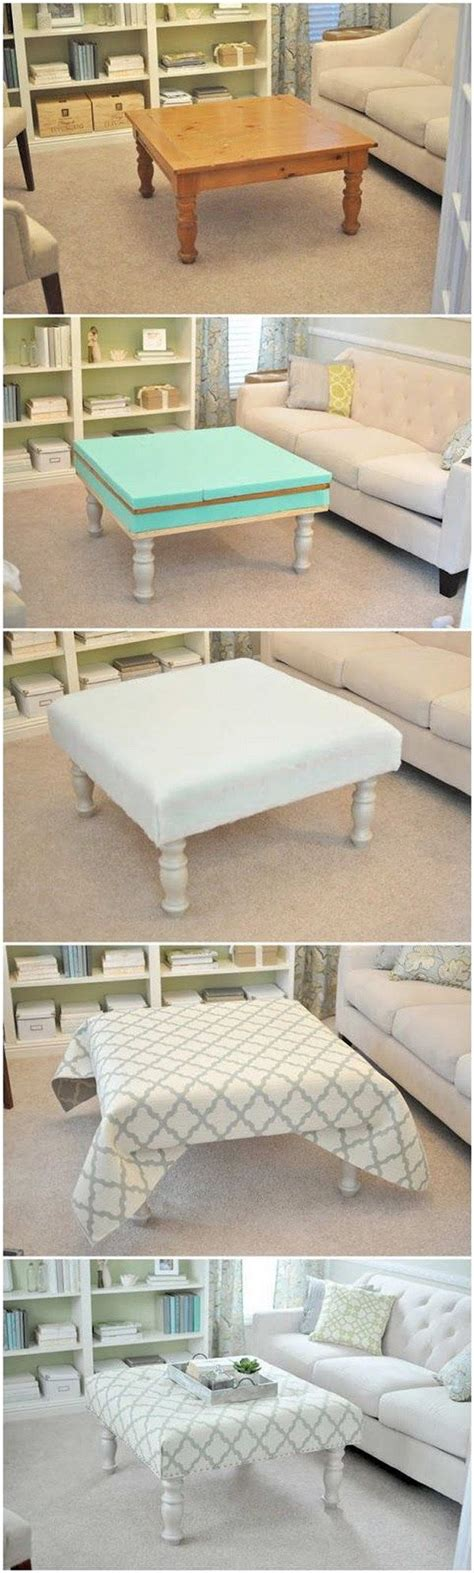 Diy Upholstered Ottoman Coffee Table 25 Best Ideas About Upholstered Ottoman On Diy Ottoman Ottoman Ideas And Pallet